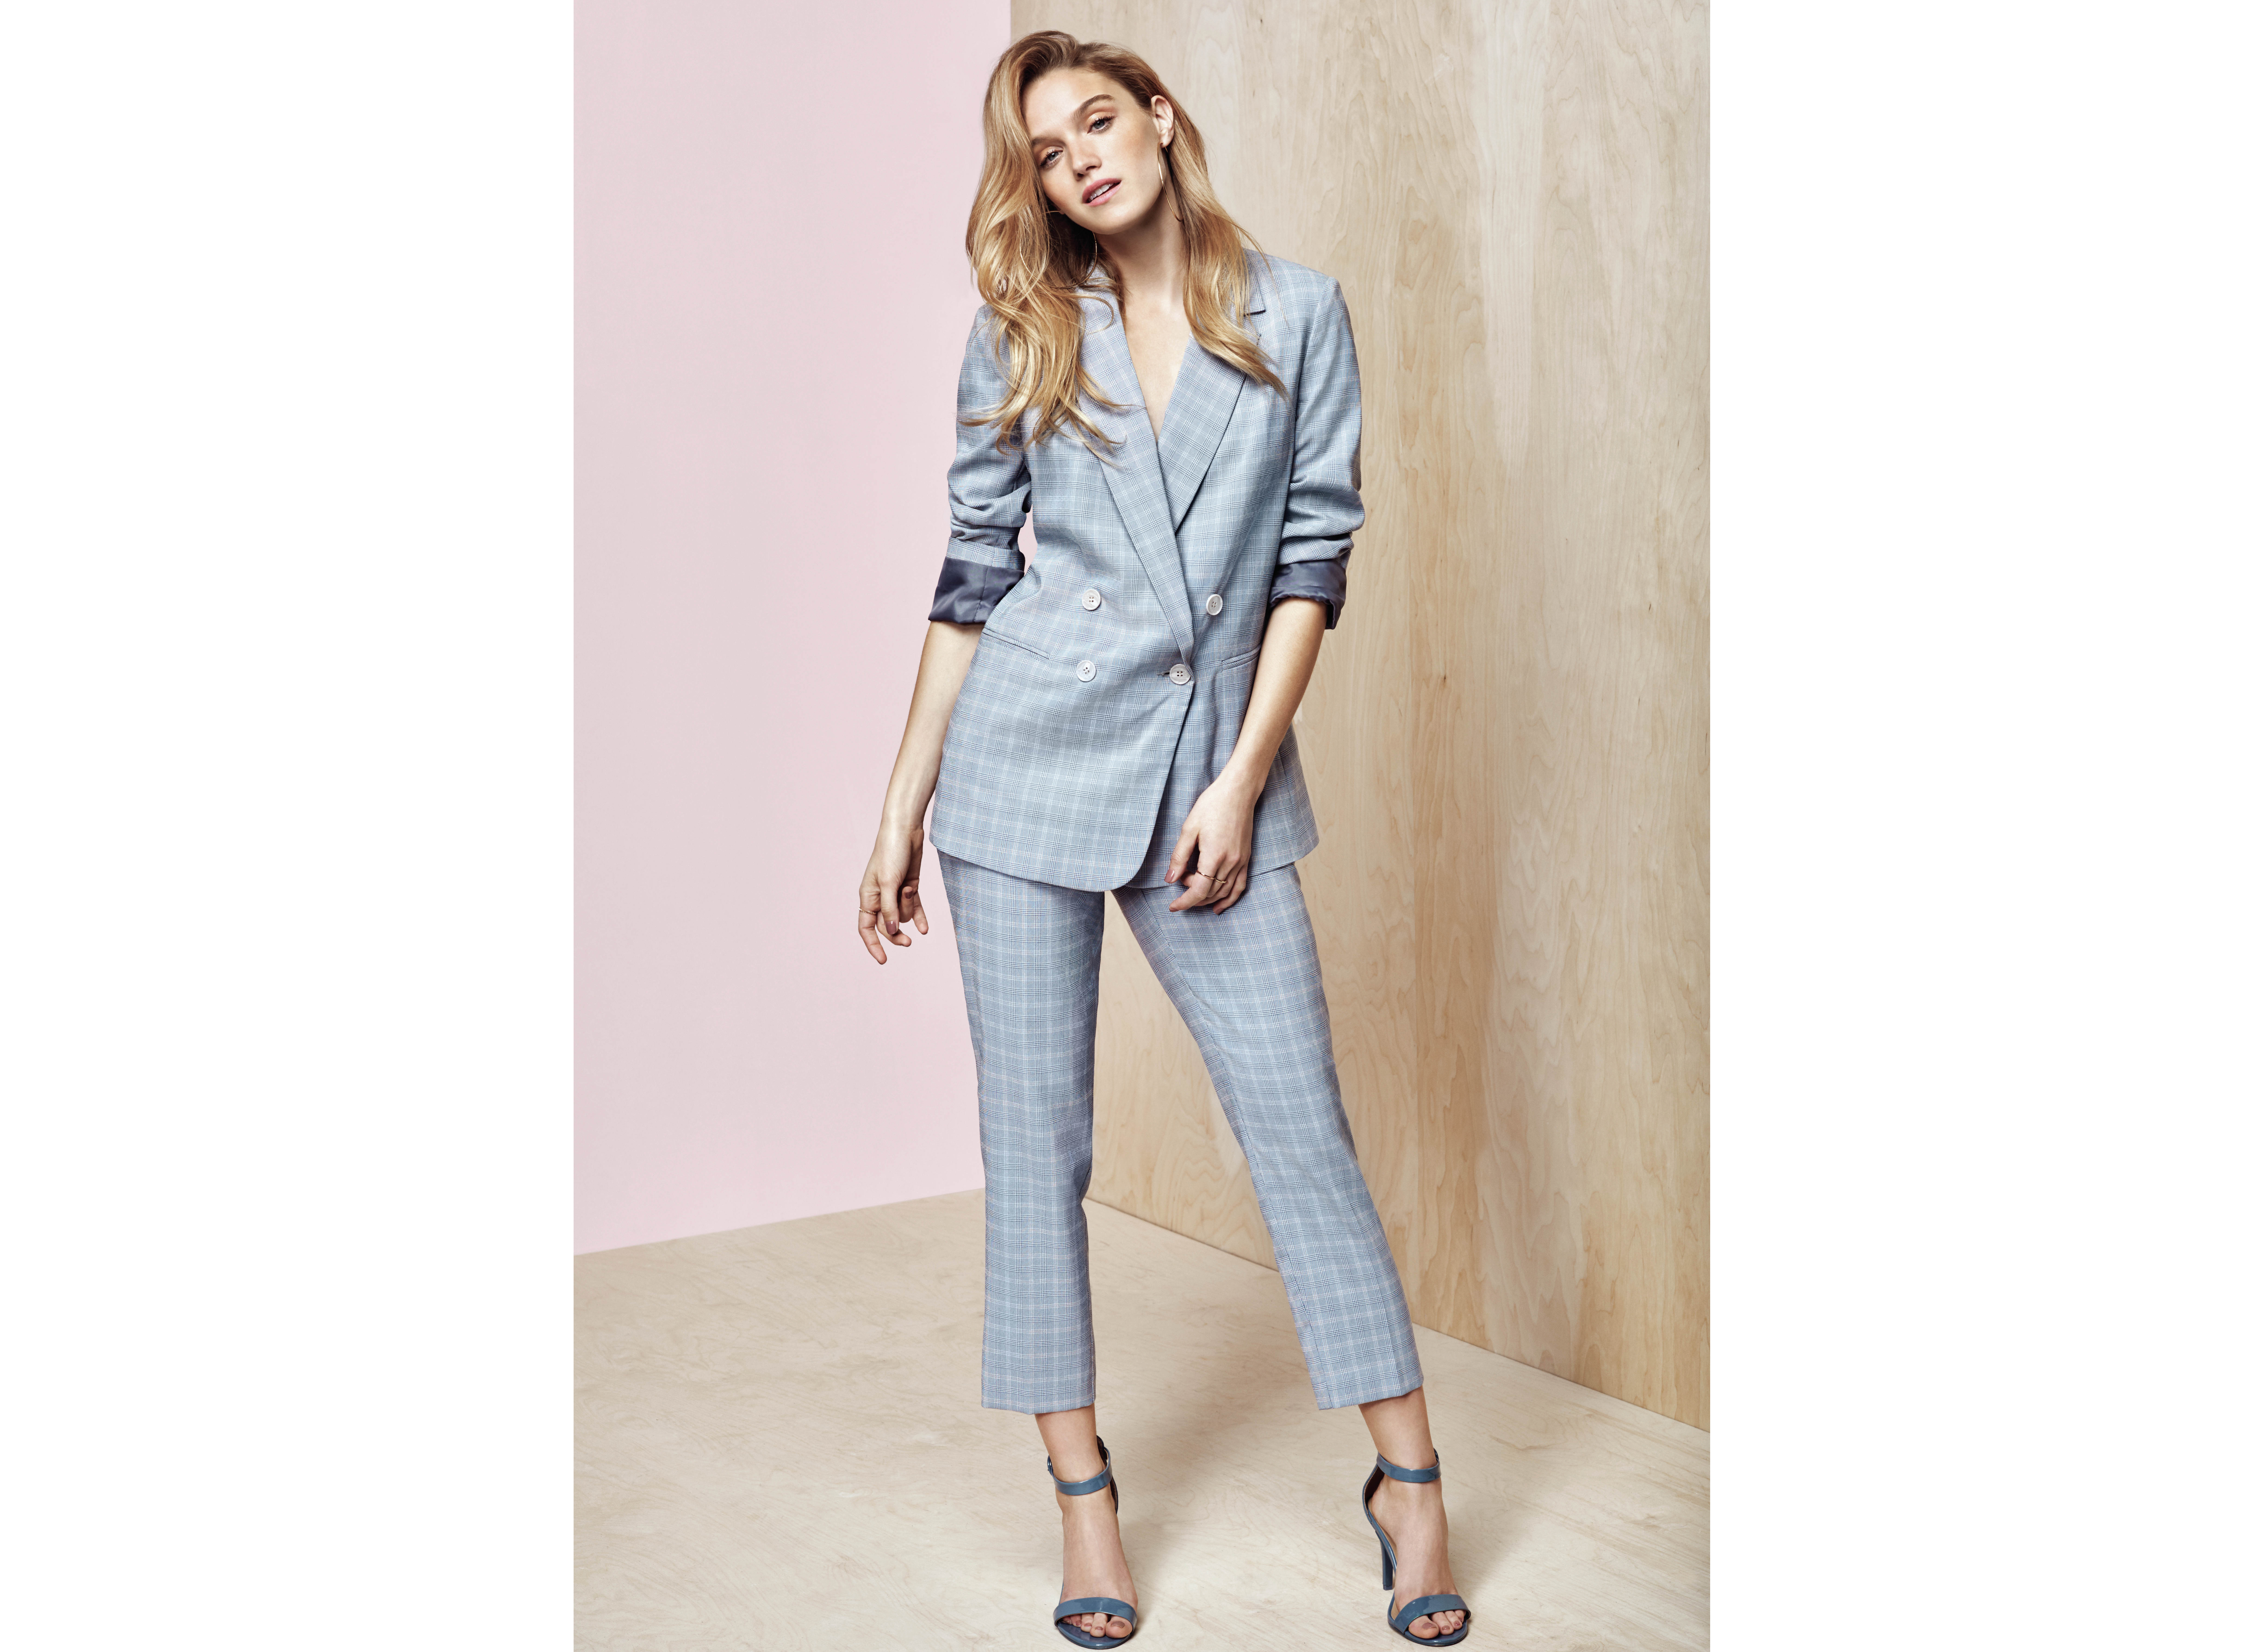 model wearing Dorothy Perkins Check Suit Jacket, Trousers and Blue Bounce Heeled Sandals